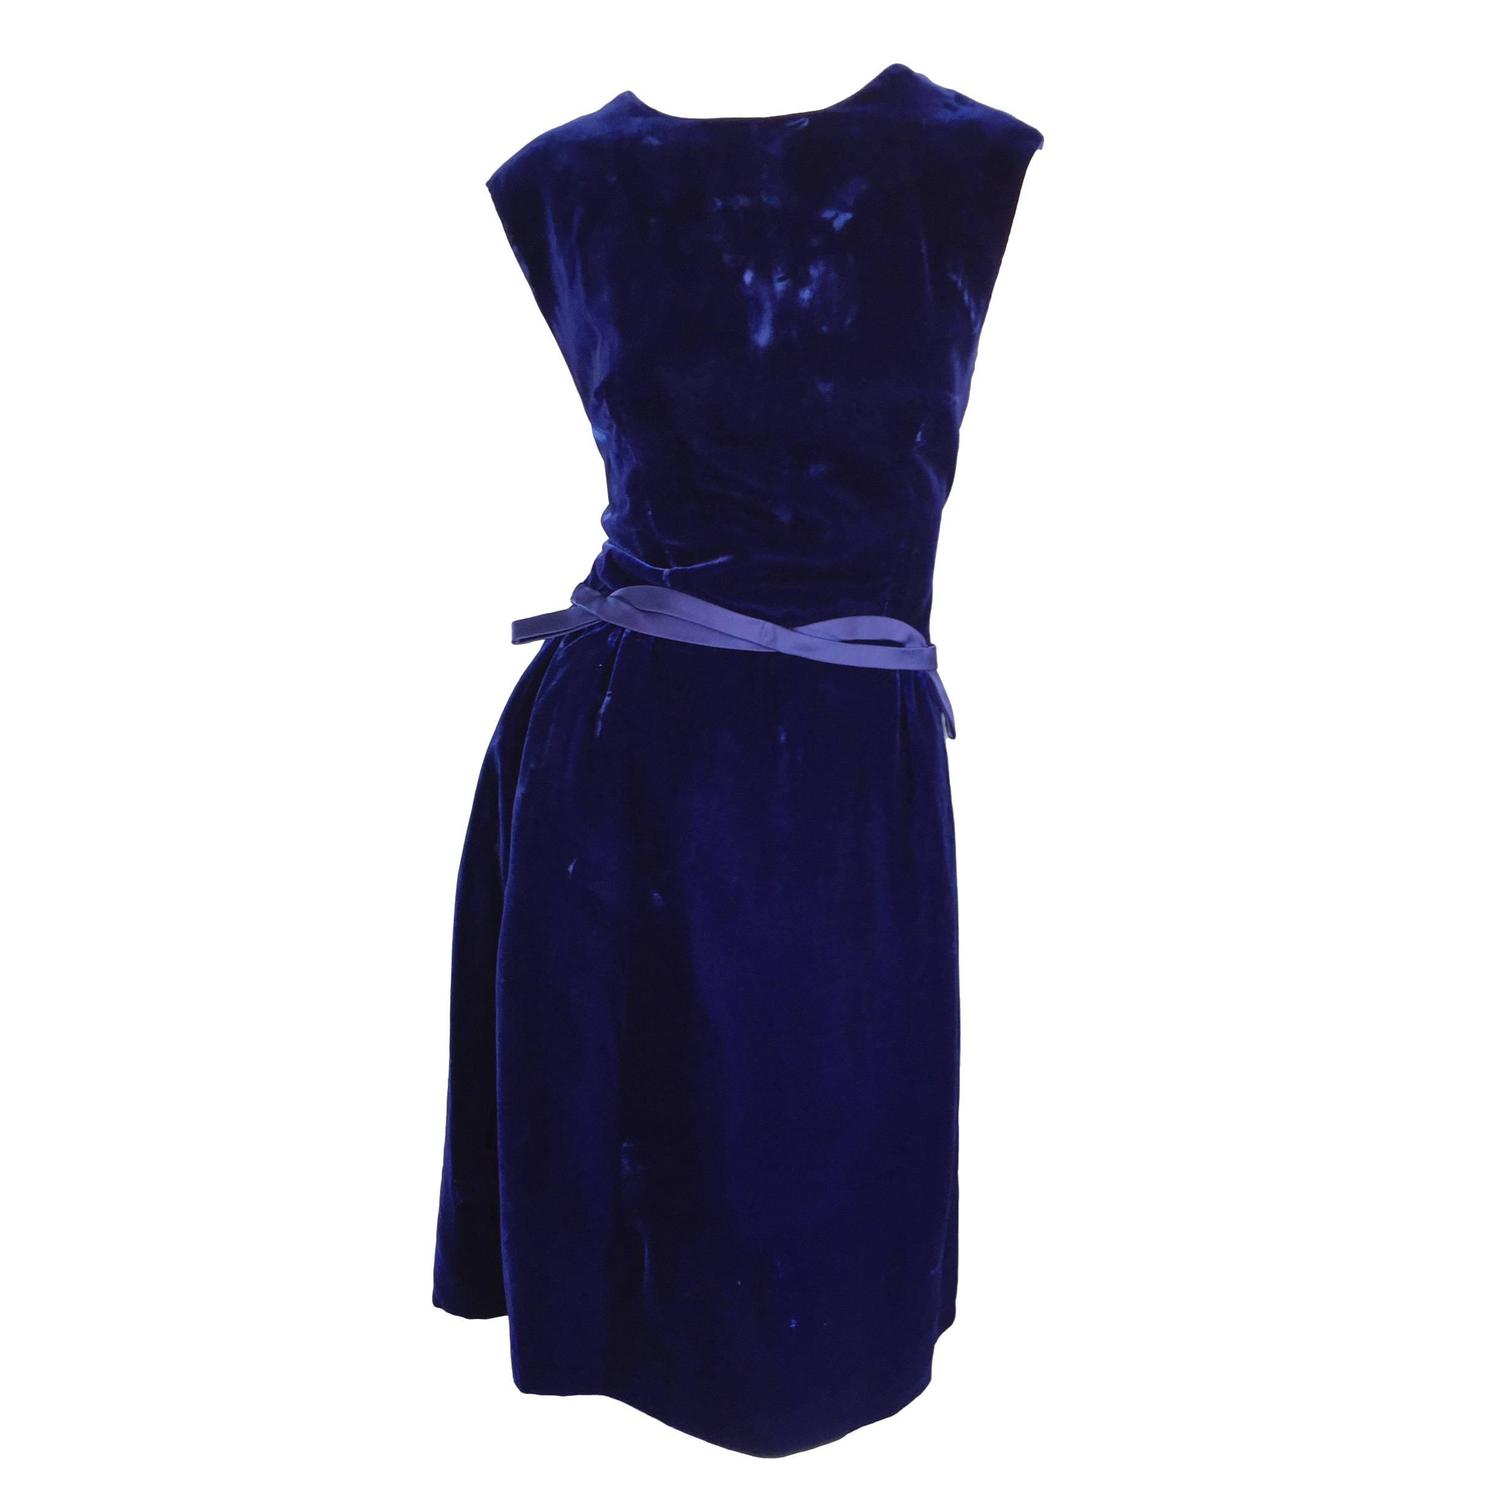 f59092d6016 1950s Suzy Perette Royal Blue Velvet 50s Vintage Dress w  Ribbon Belt  Detail For Sale at 1stdibs